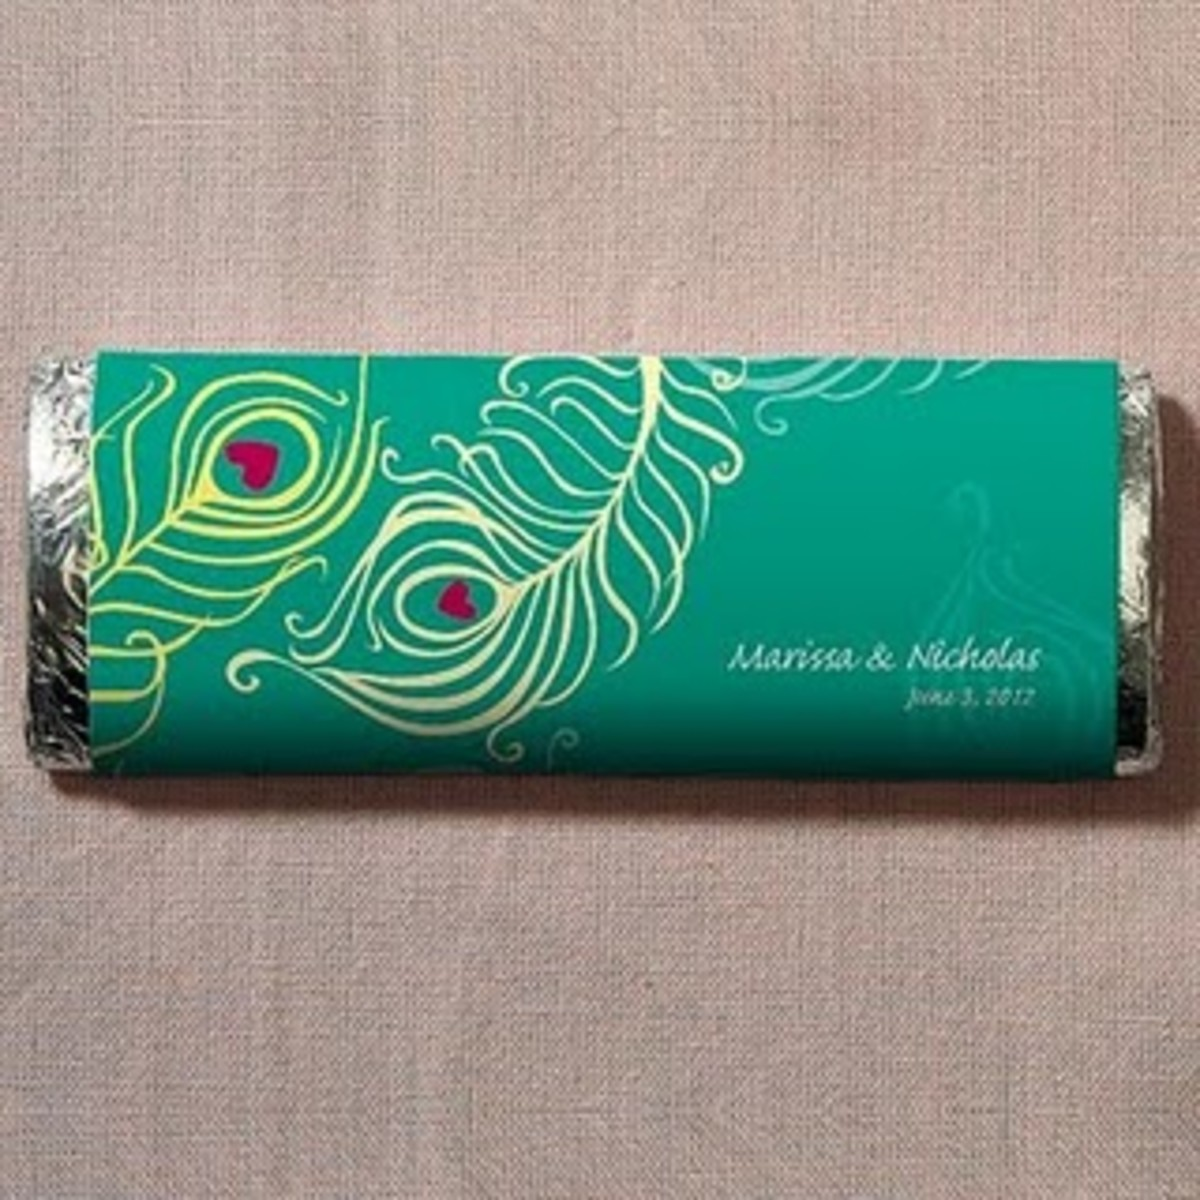 Edible Peacock Wedding Favors - Peacock Chocolate Bar